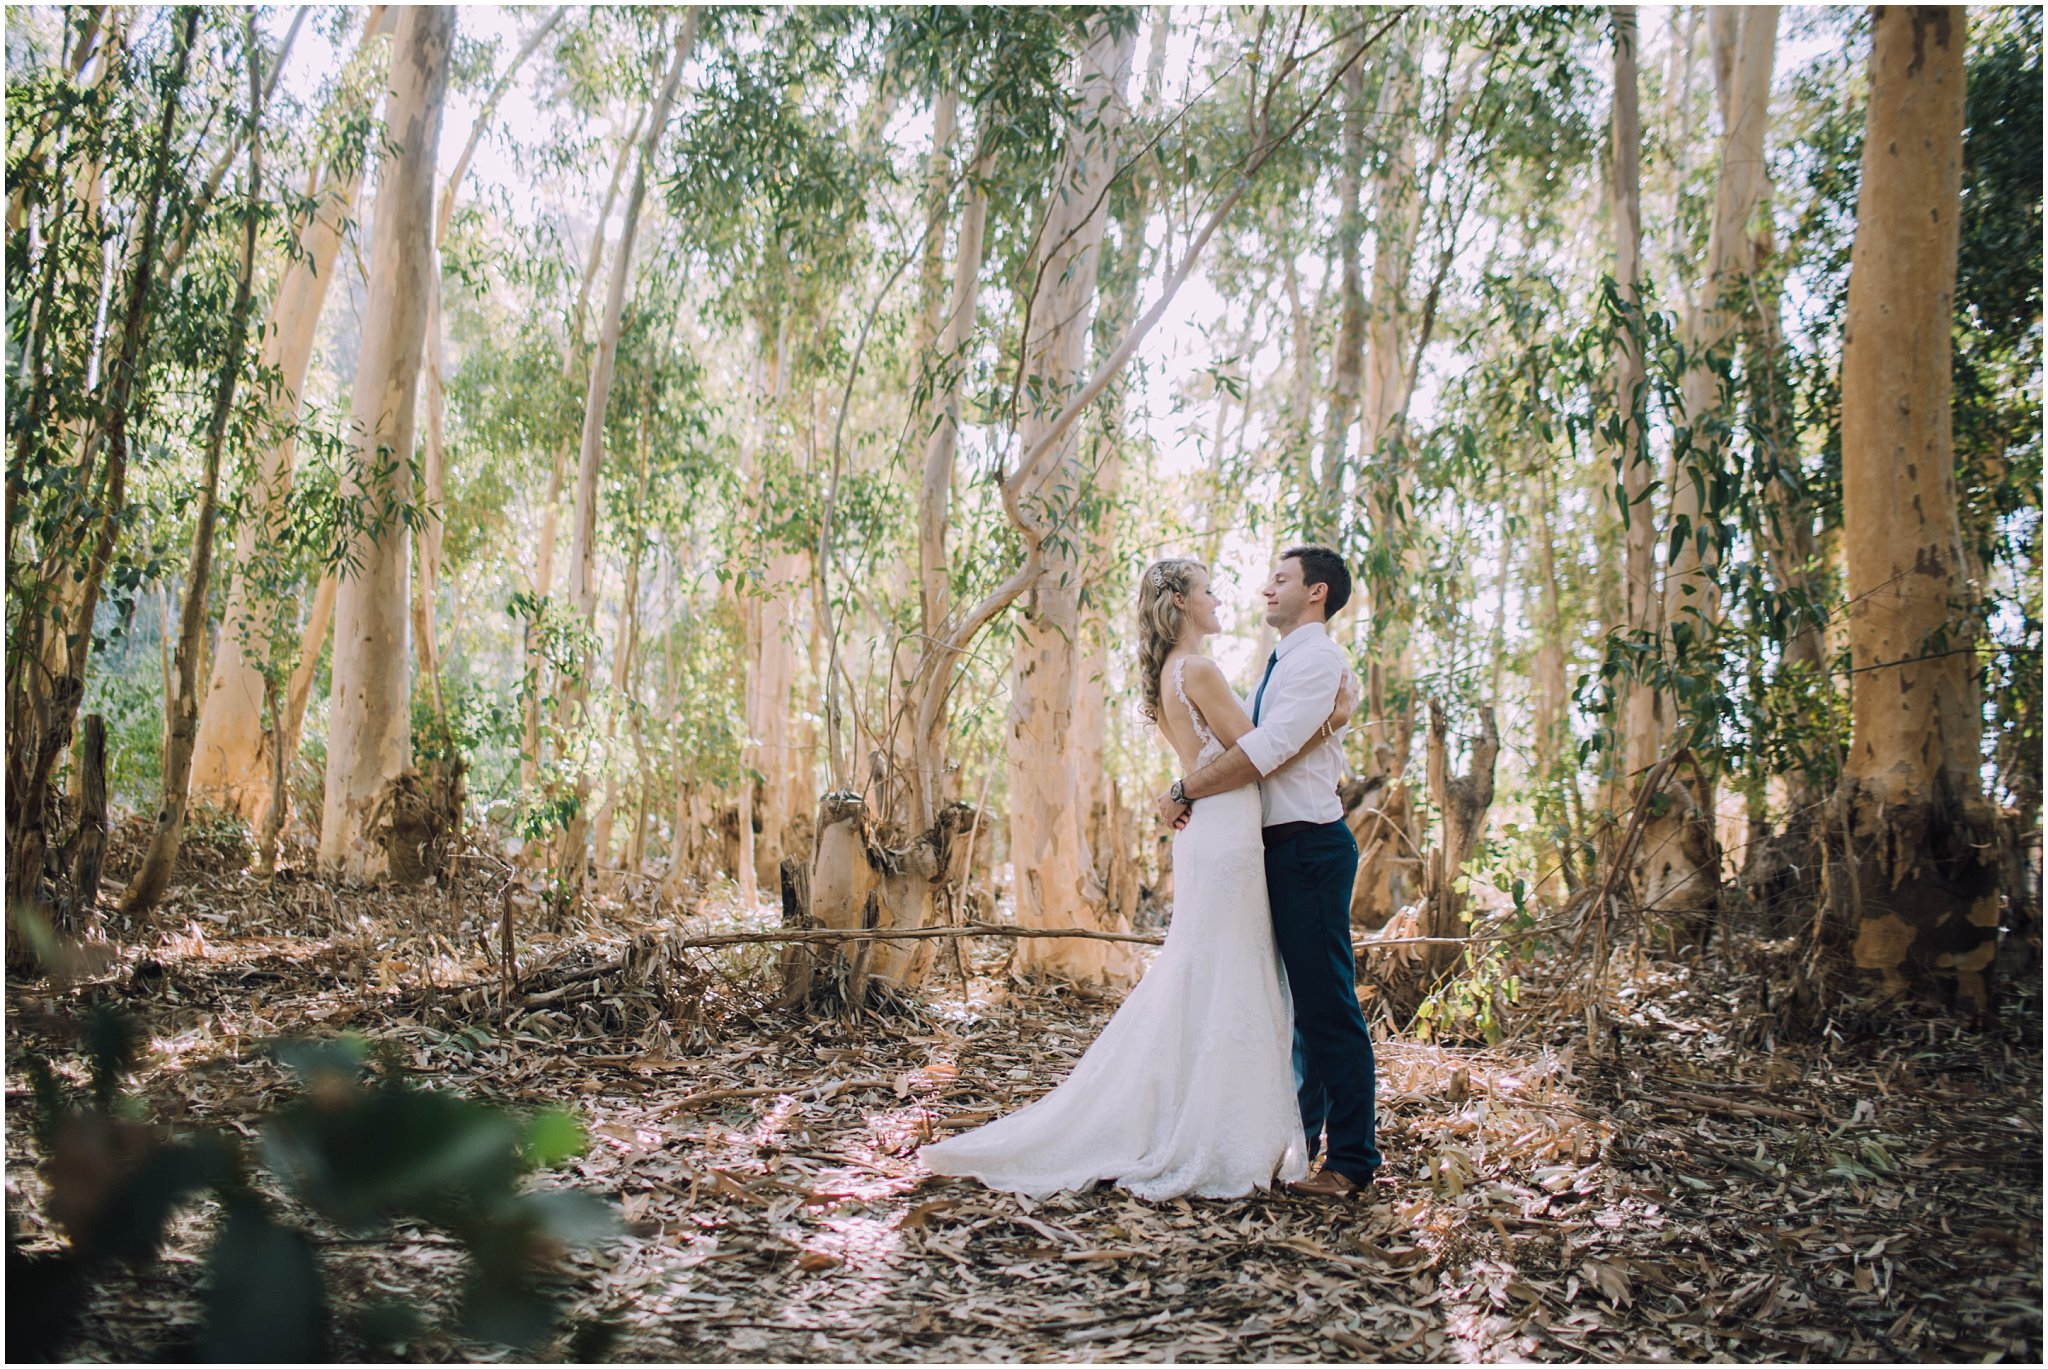 Ronel Kruger Cape Town Wedding and Lifestyle Photographer_2875.jpg